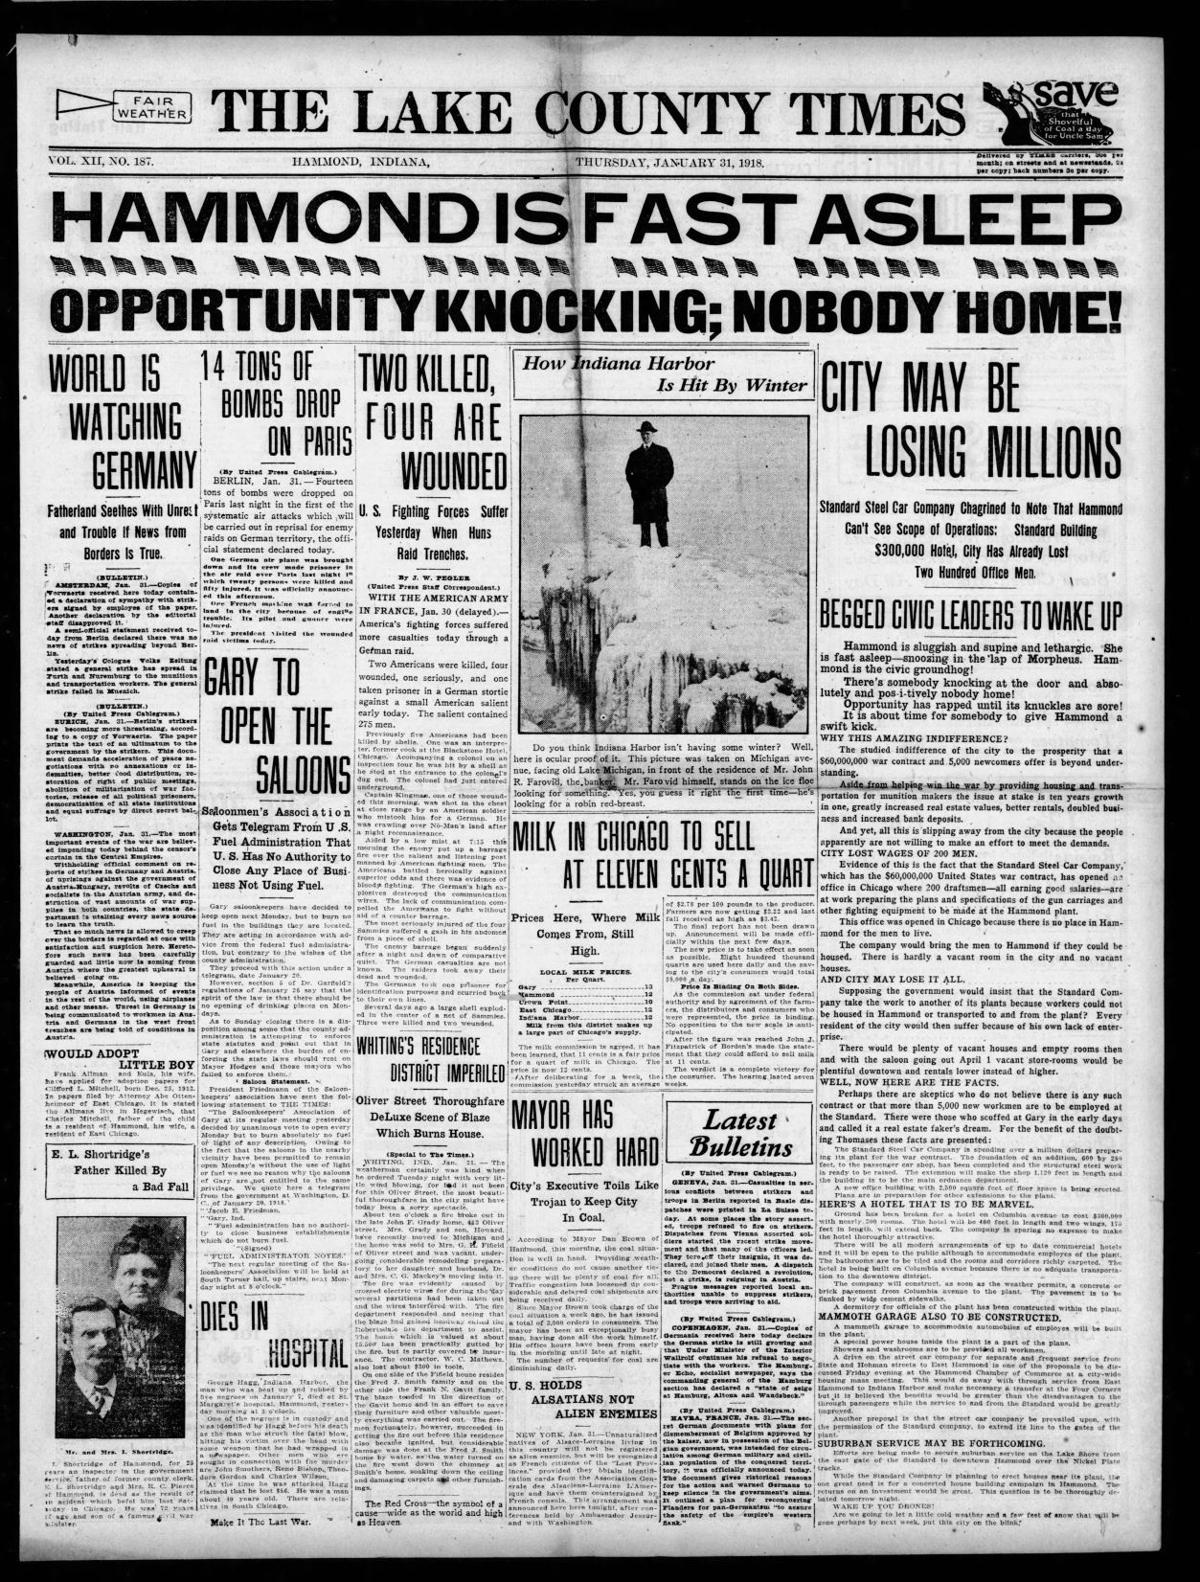 Jan. 31, 1918: Hammond Is Fast Asleep